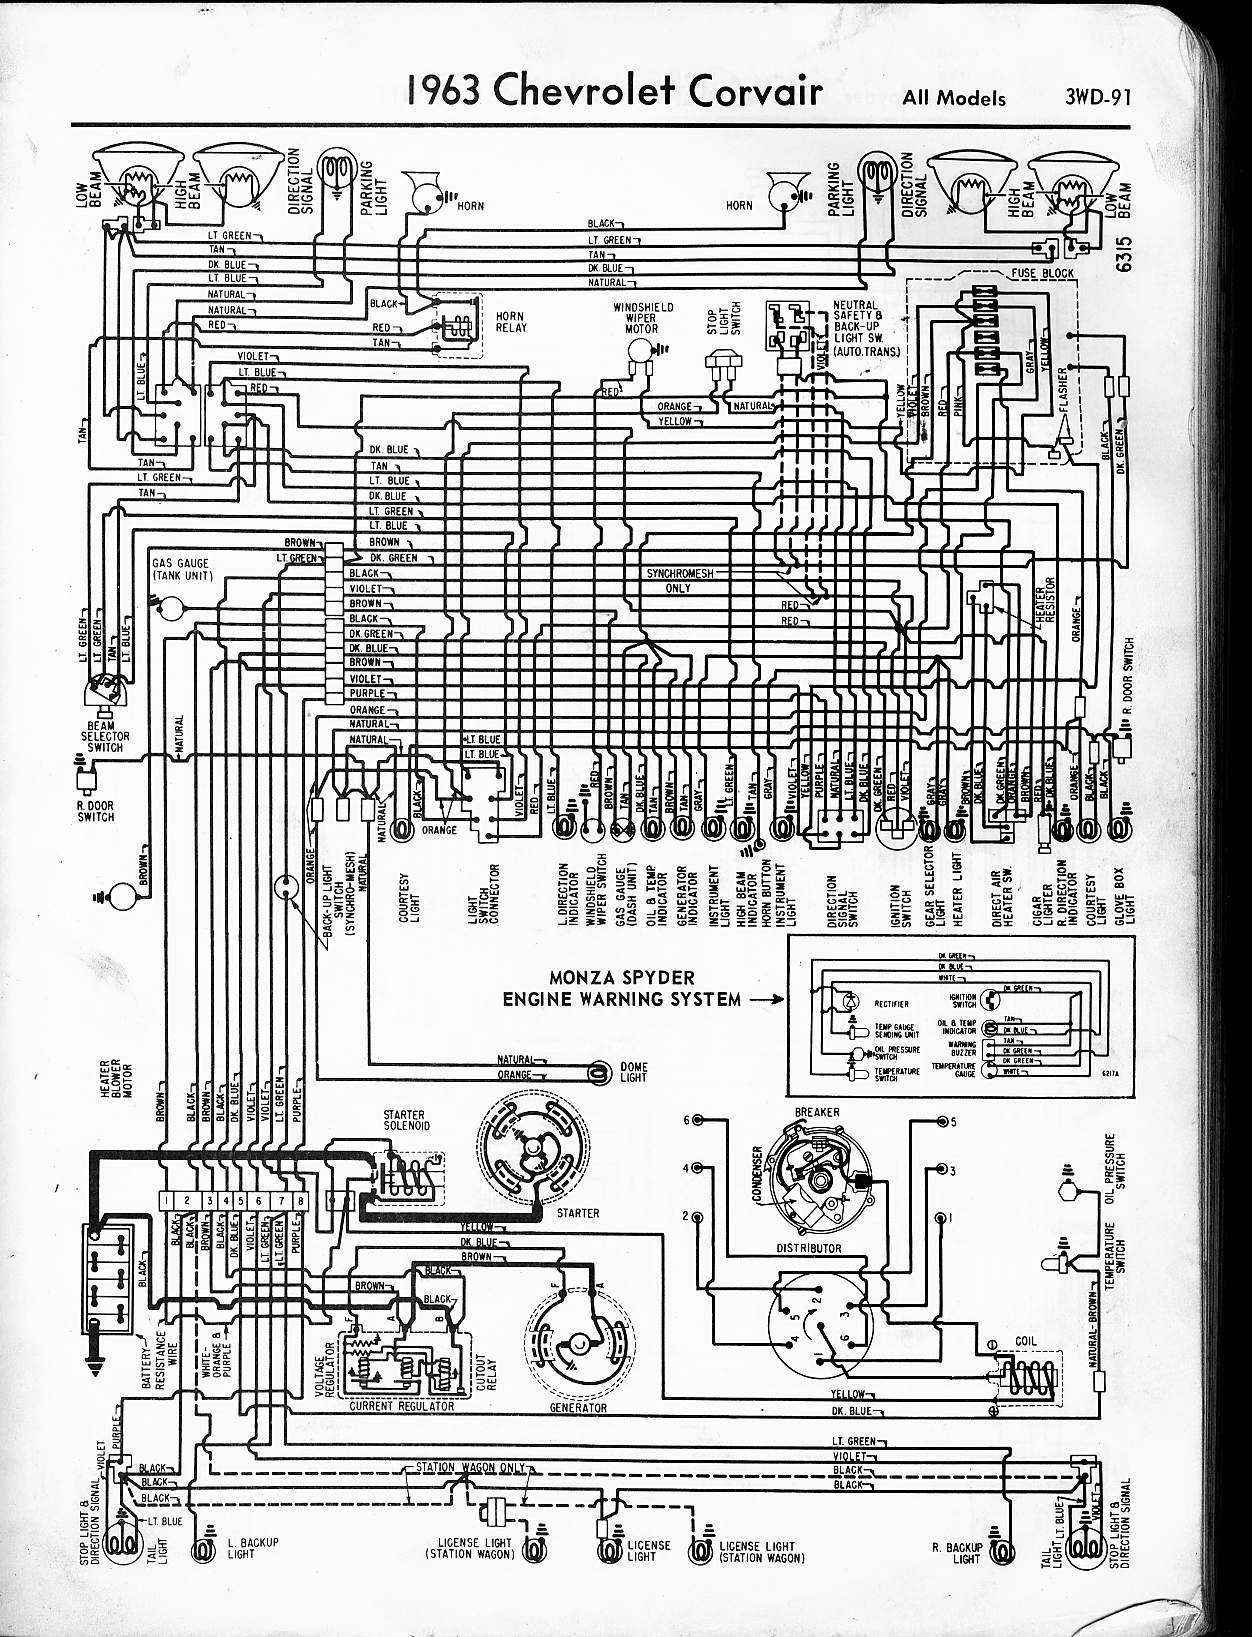 MWireChev63_3WD 091 57 65 chevy wiring diagrams 1964 impala wiring diagram for ignition at webbmarketing.co